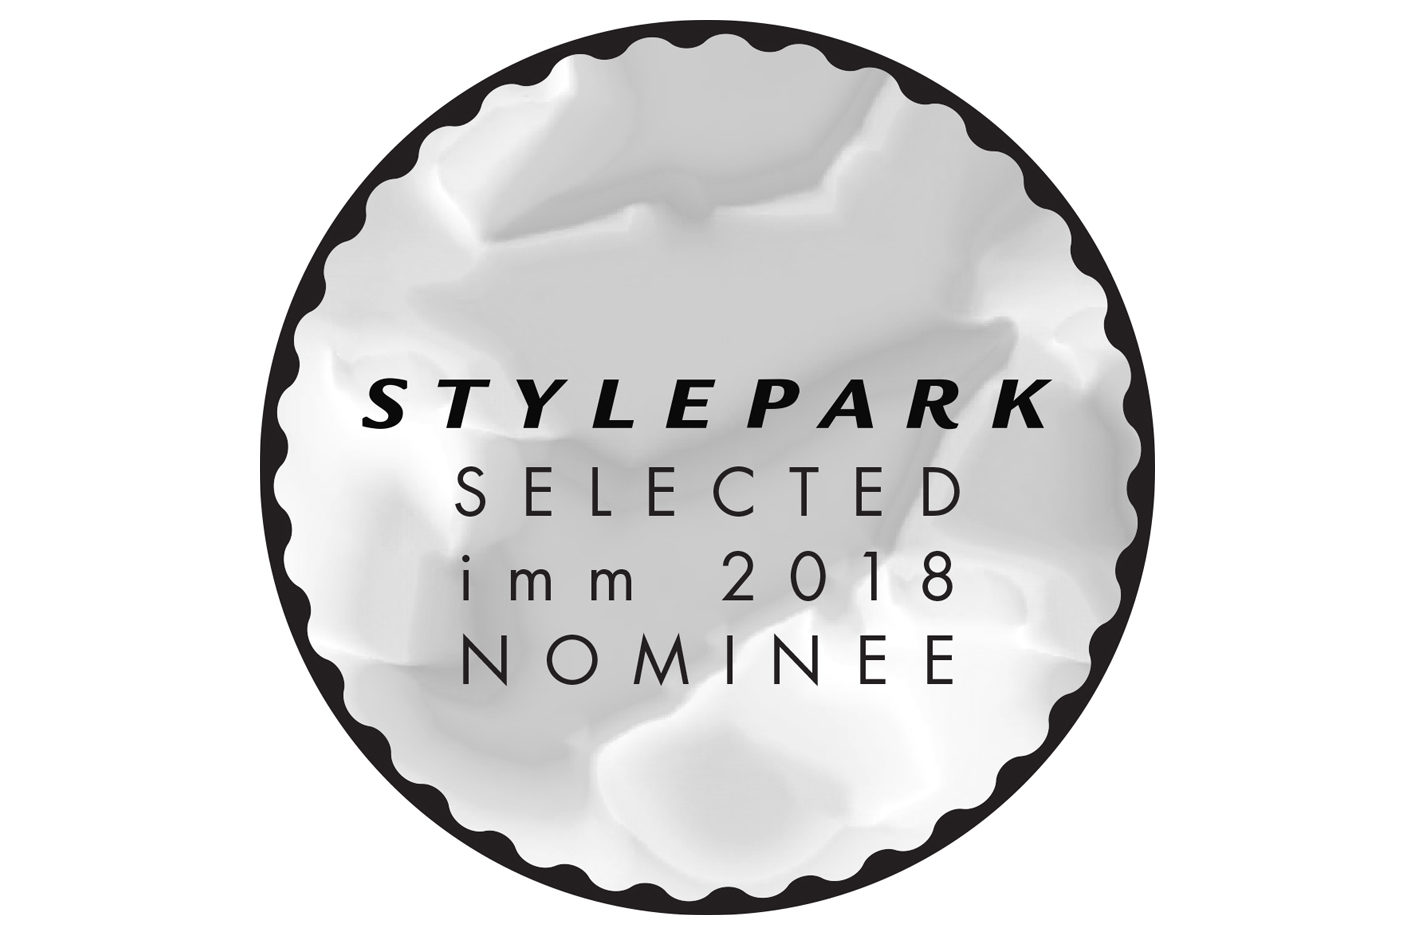 imm 2018, Badge Nominees, Stylepark